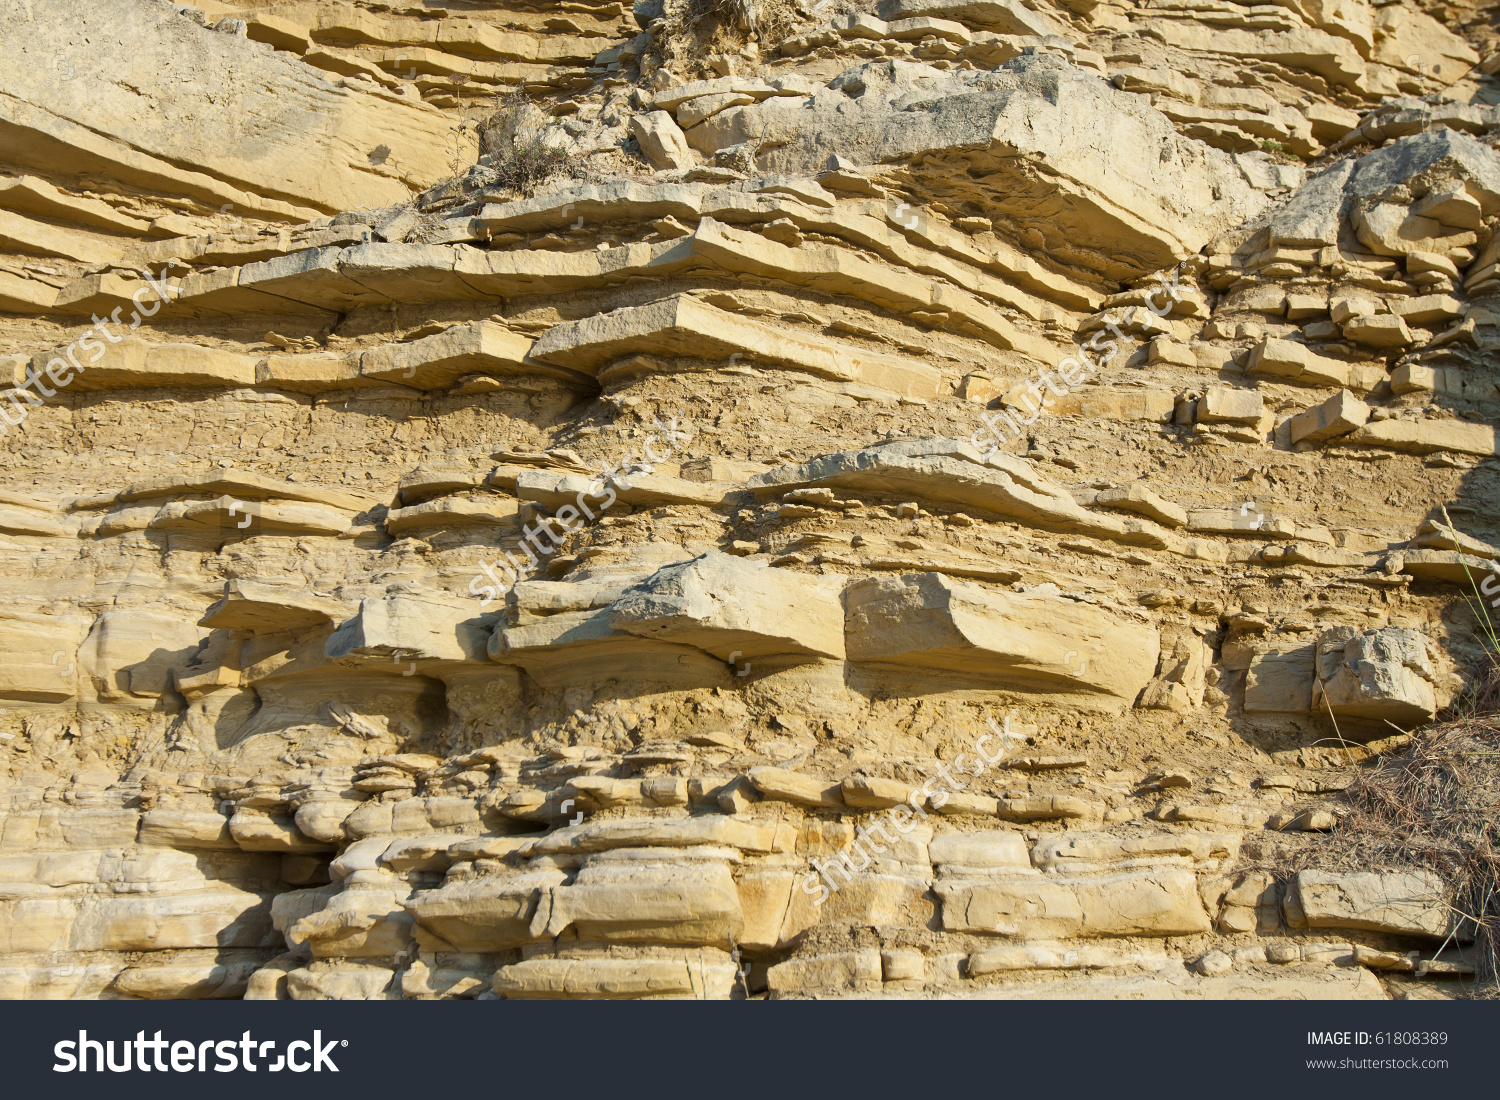 Geological Layers Earth Layered Rock Stock Photo 61808389.